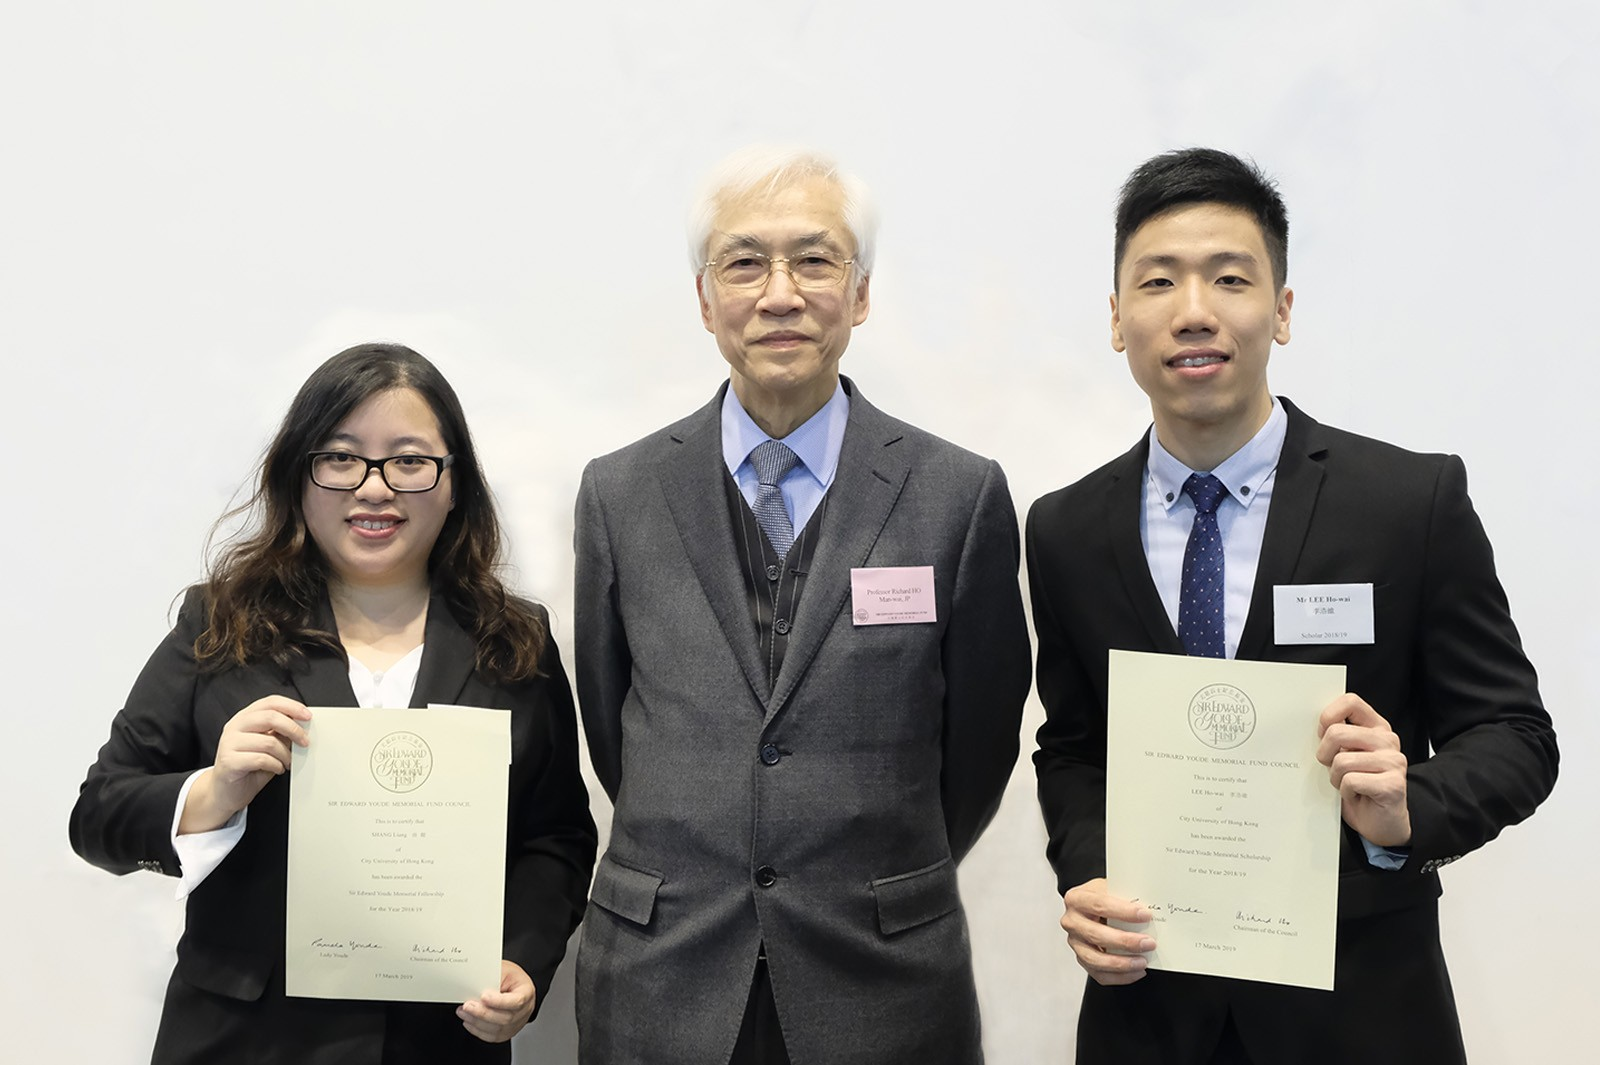 Two students at CityU have been recognised by the Sir Edward Youde Memorial Fund this year for their outstanding academic performance and enthusiasm to serve society.